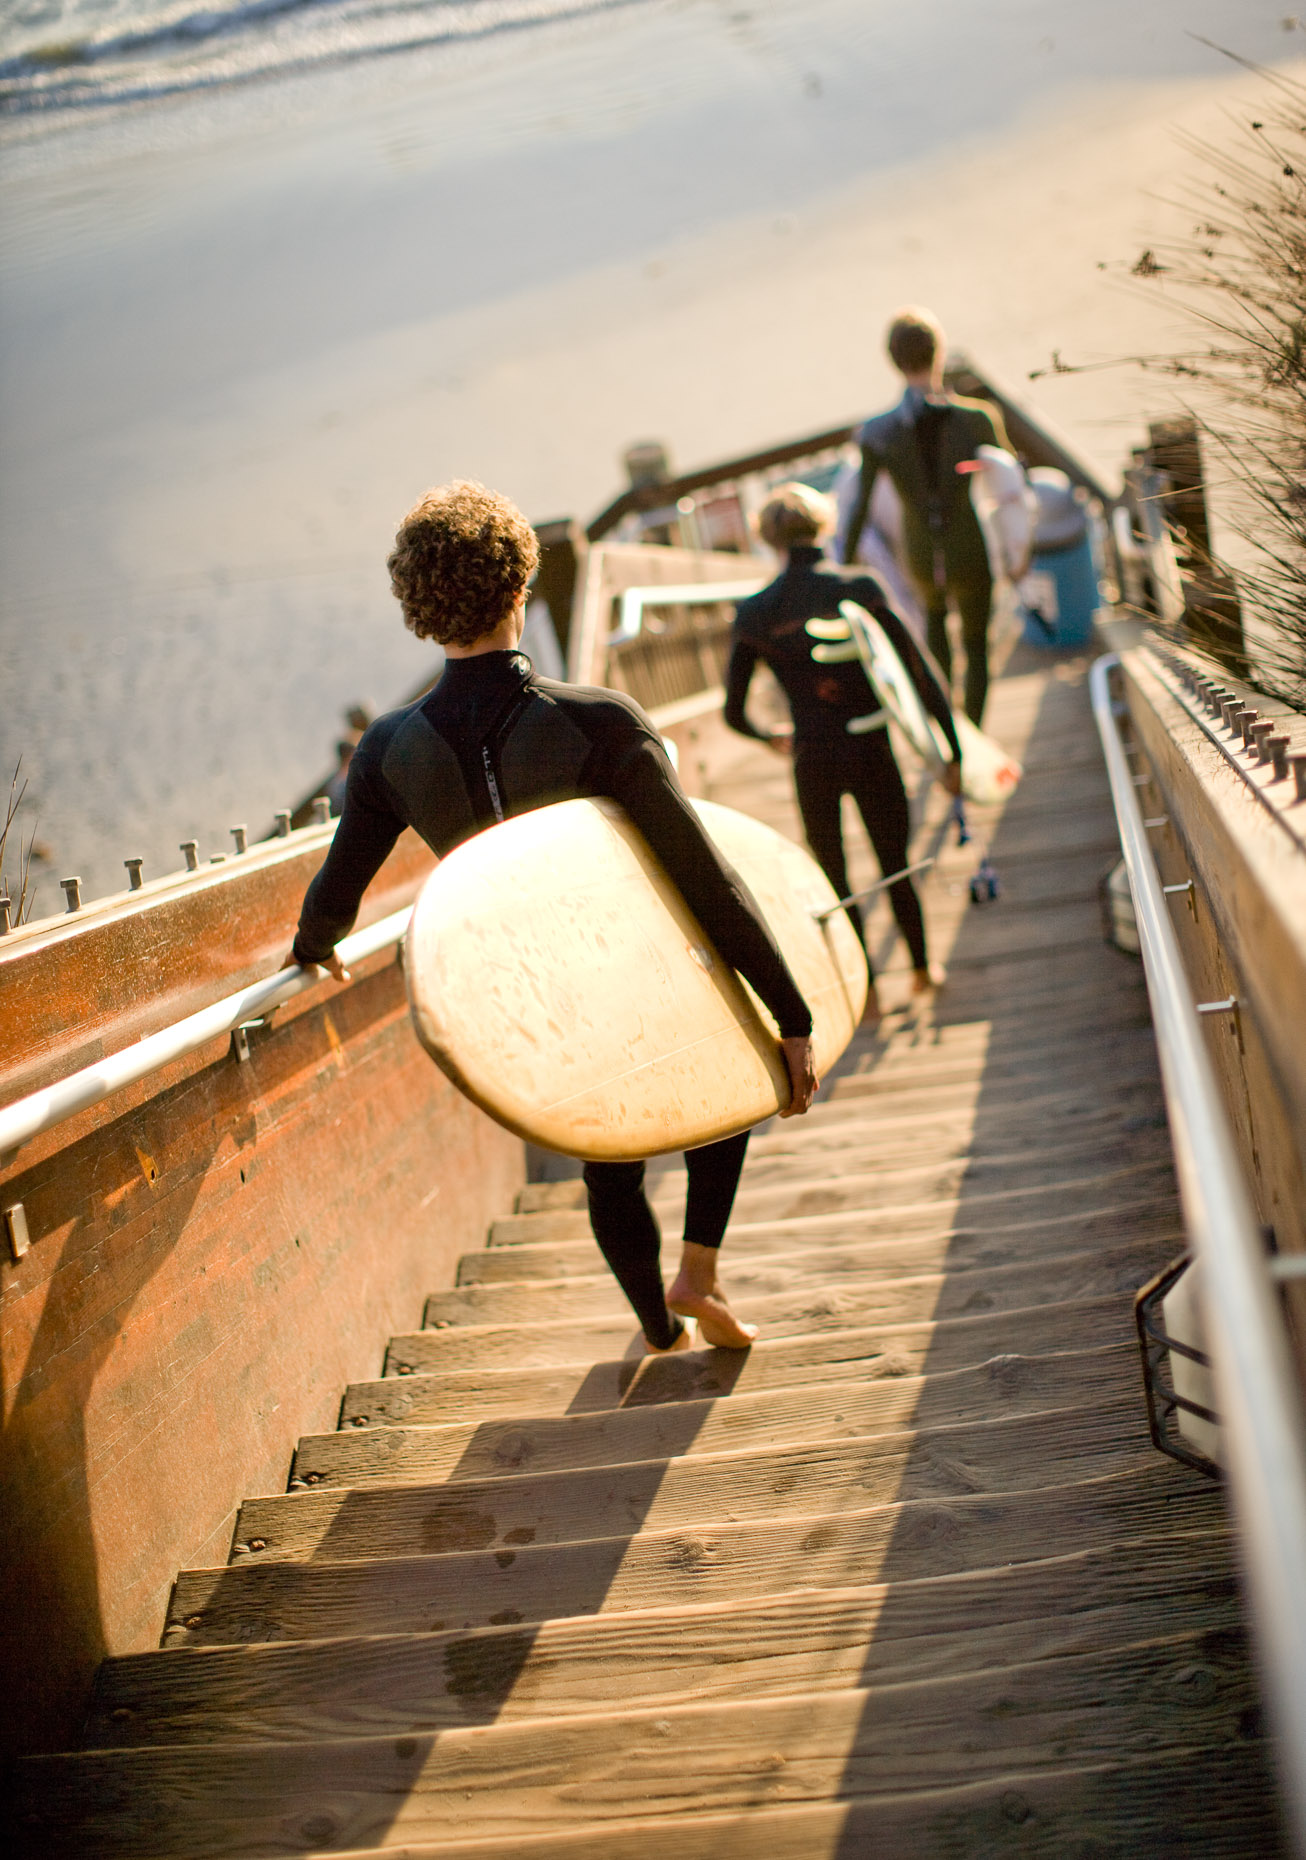 Men in wet suits walking down staircase to beach for surfing by David Zaitz